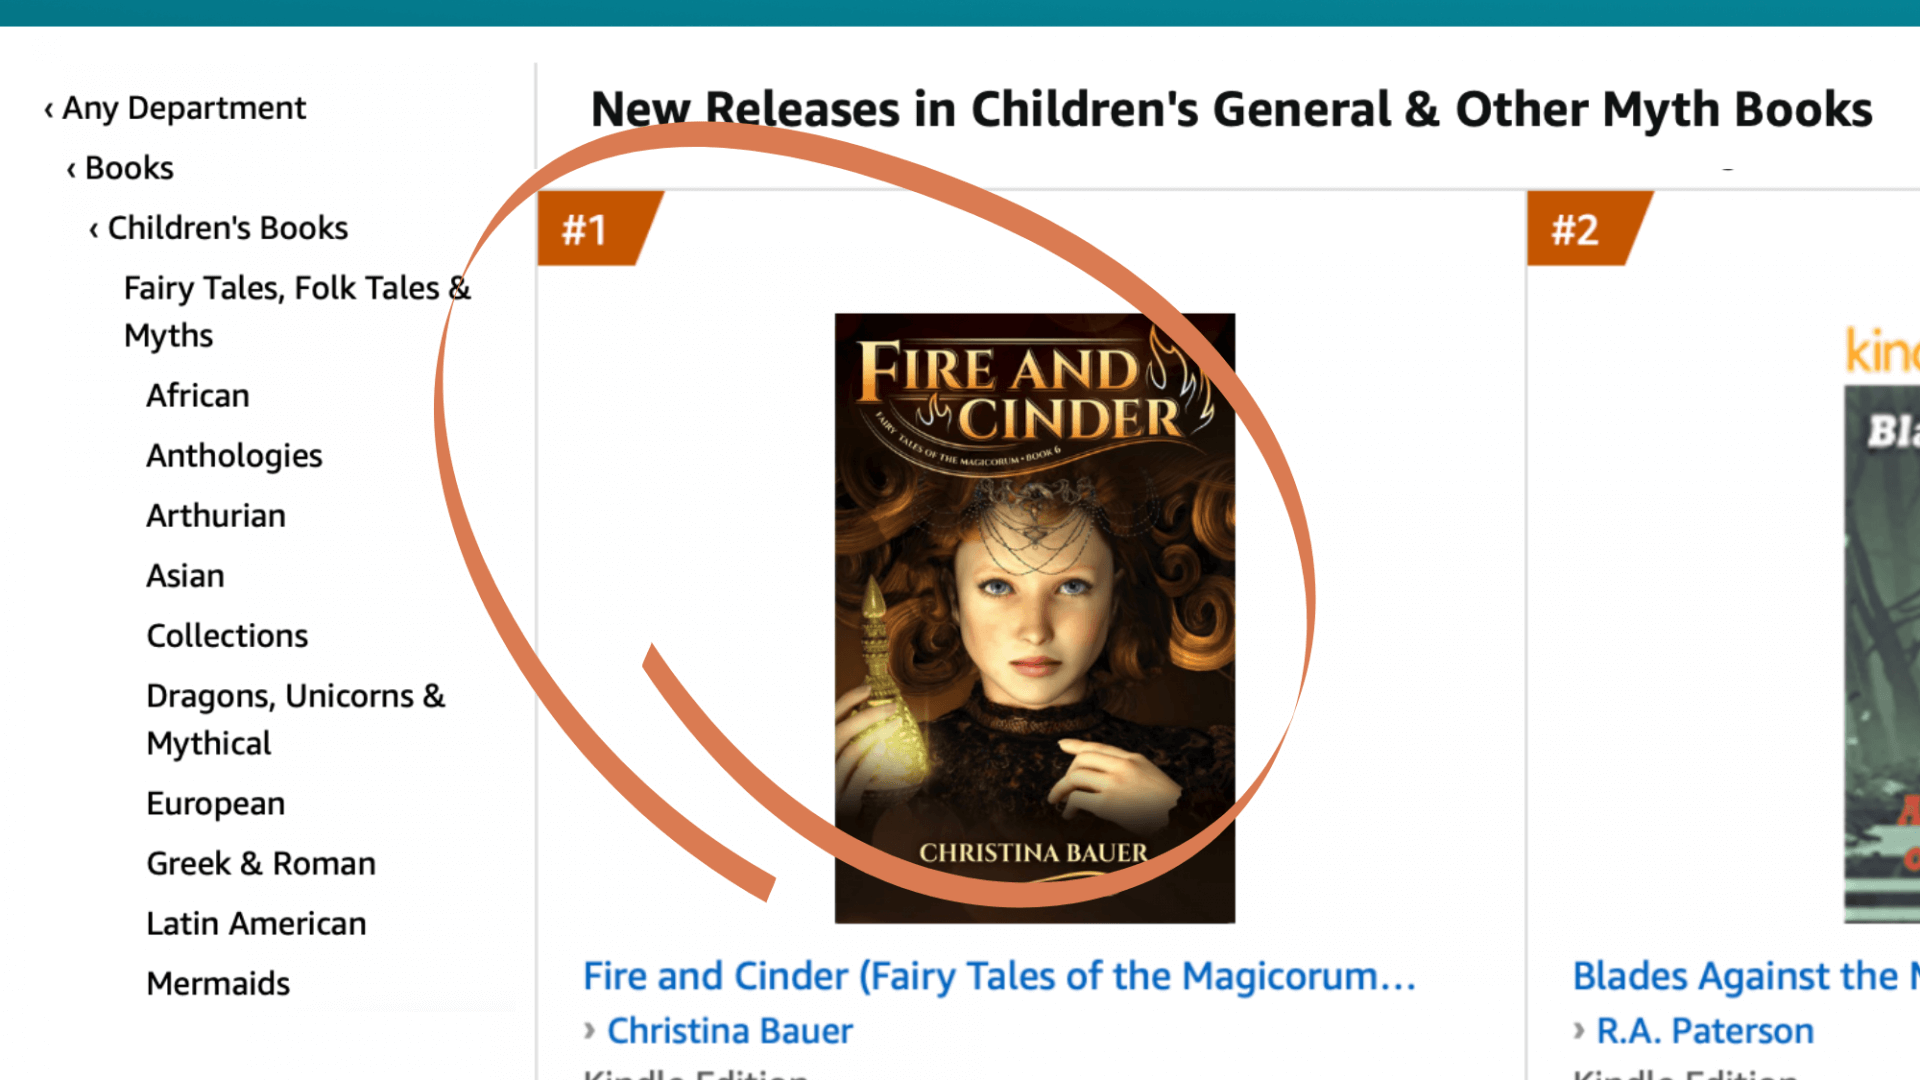 FIRE AND CINDER #1 on Amazon